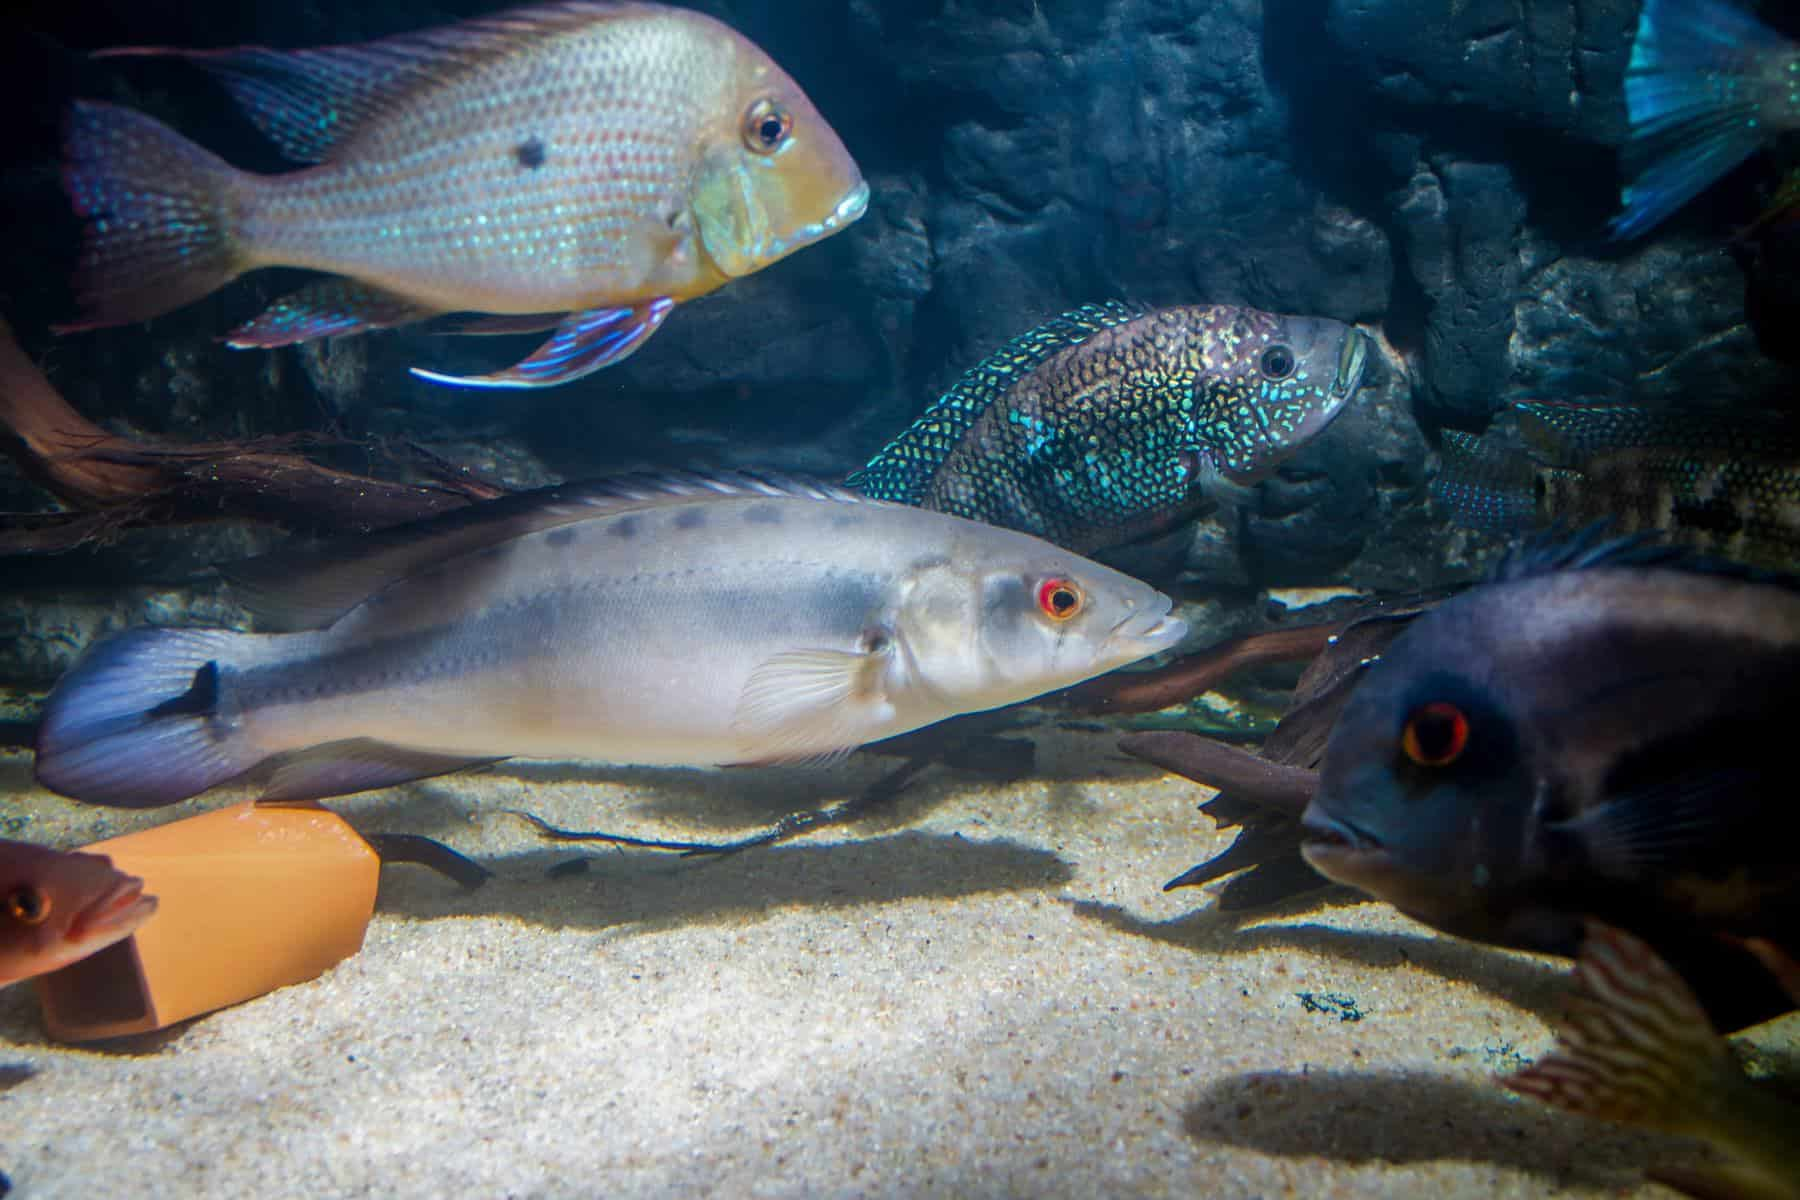 pike cichlid and other underwater species